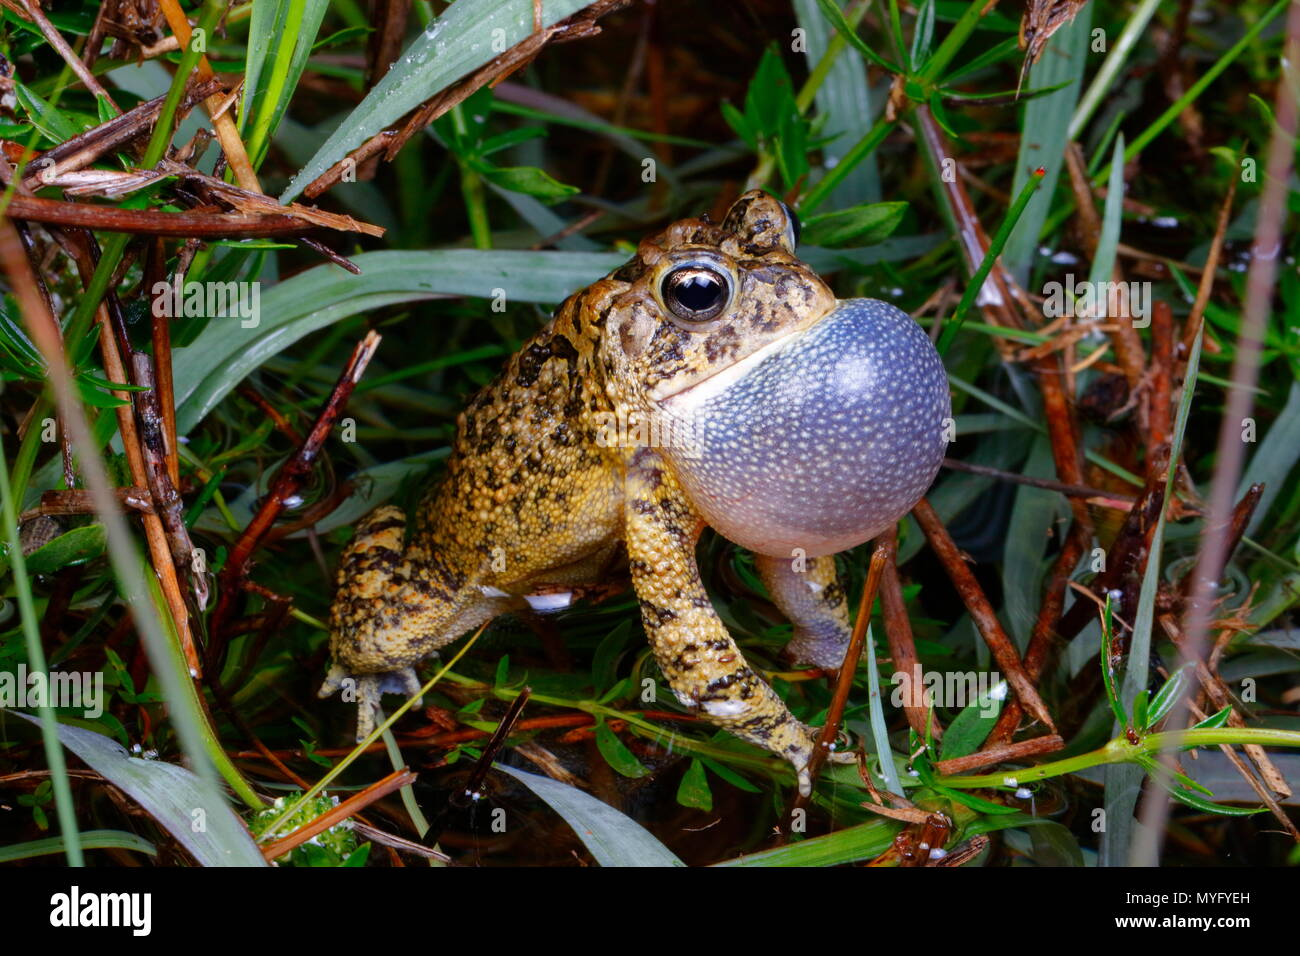 A southern toad, Bufo terrestris, with its vocal sac inflated, calling for a mate. - Stock Image